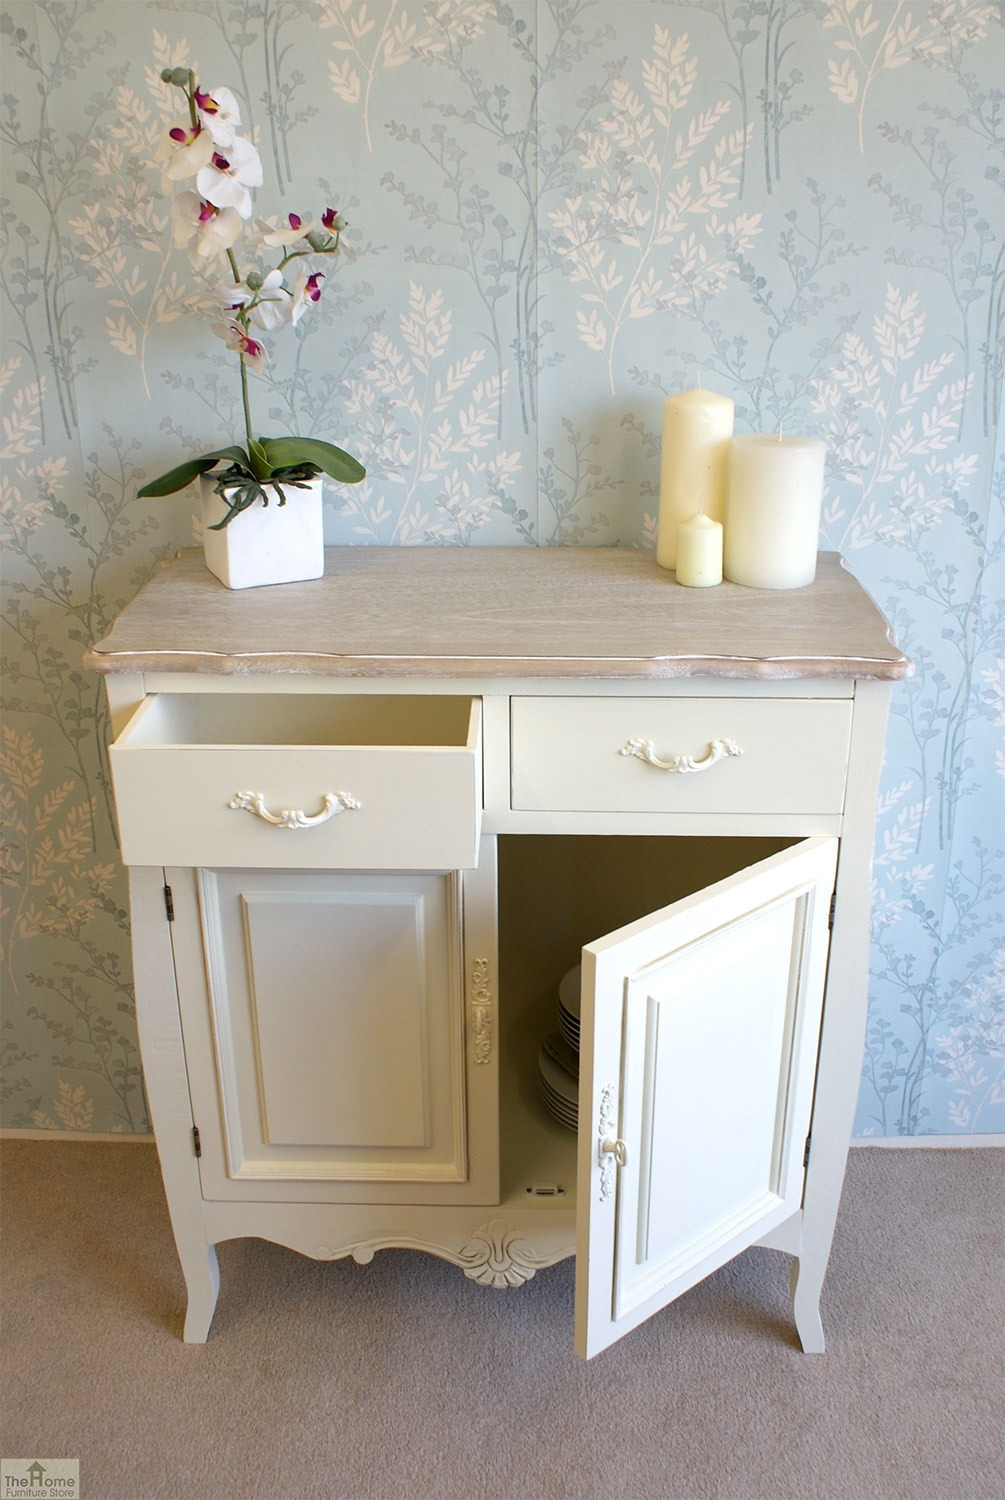 Devon 2 Drawer 2 Door Sideboard The Home Furniture Store